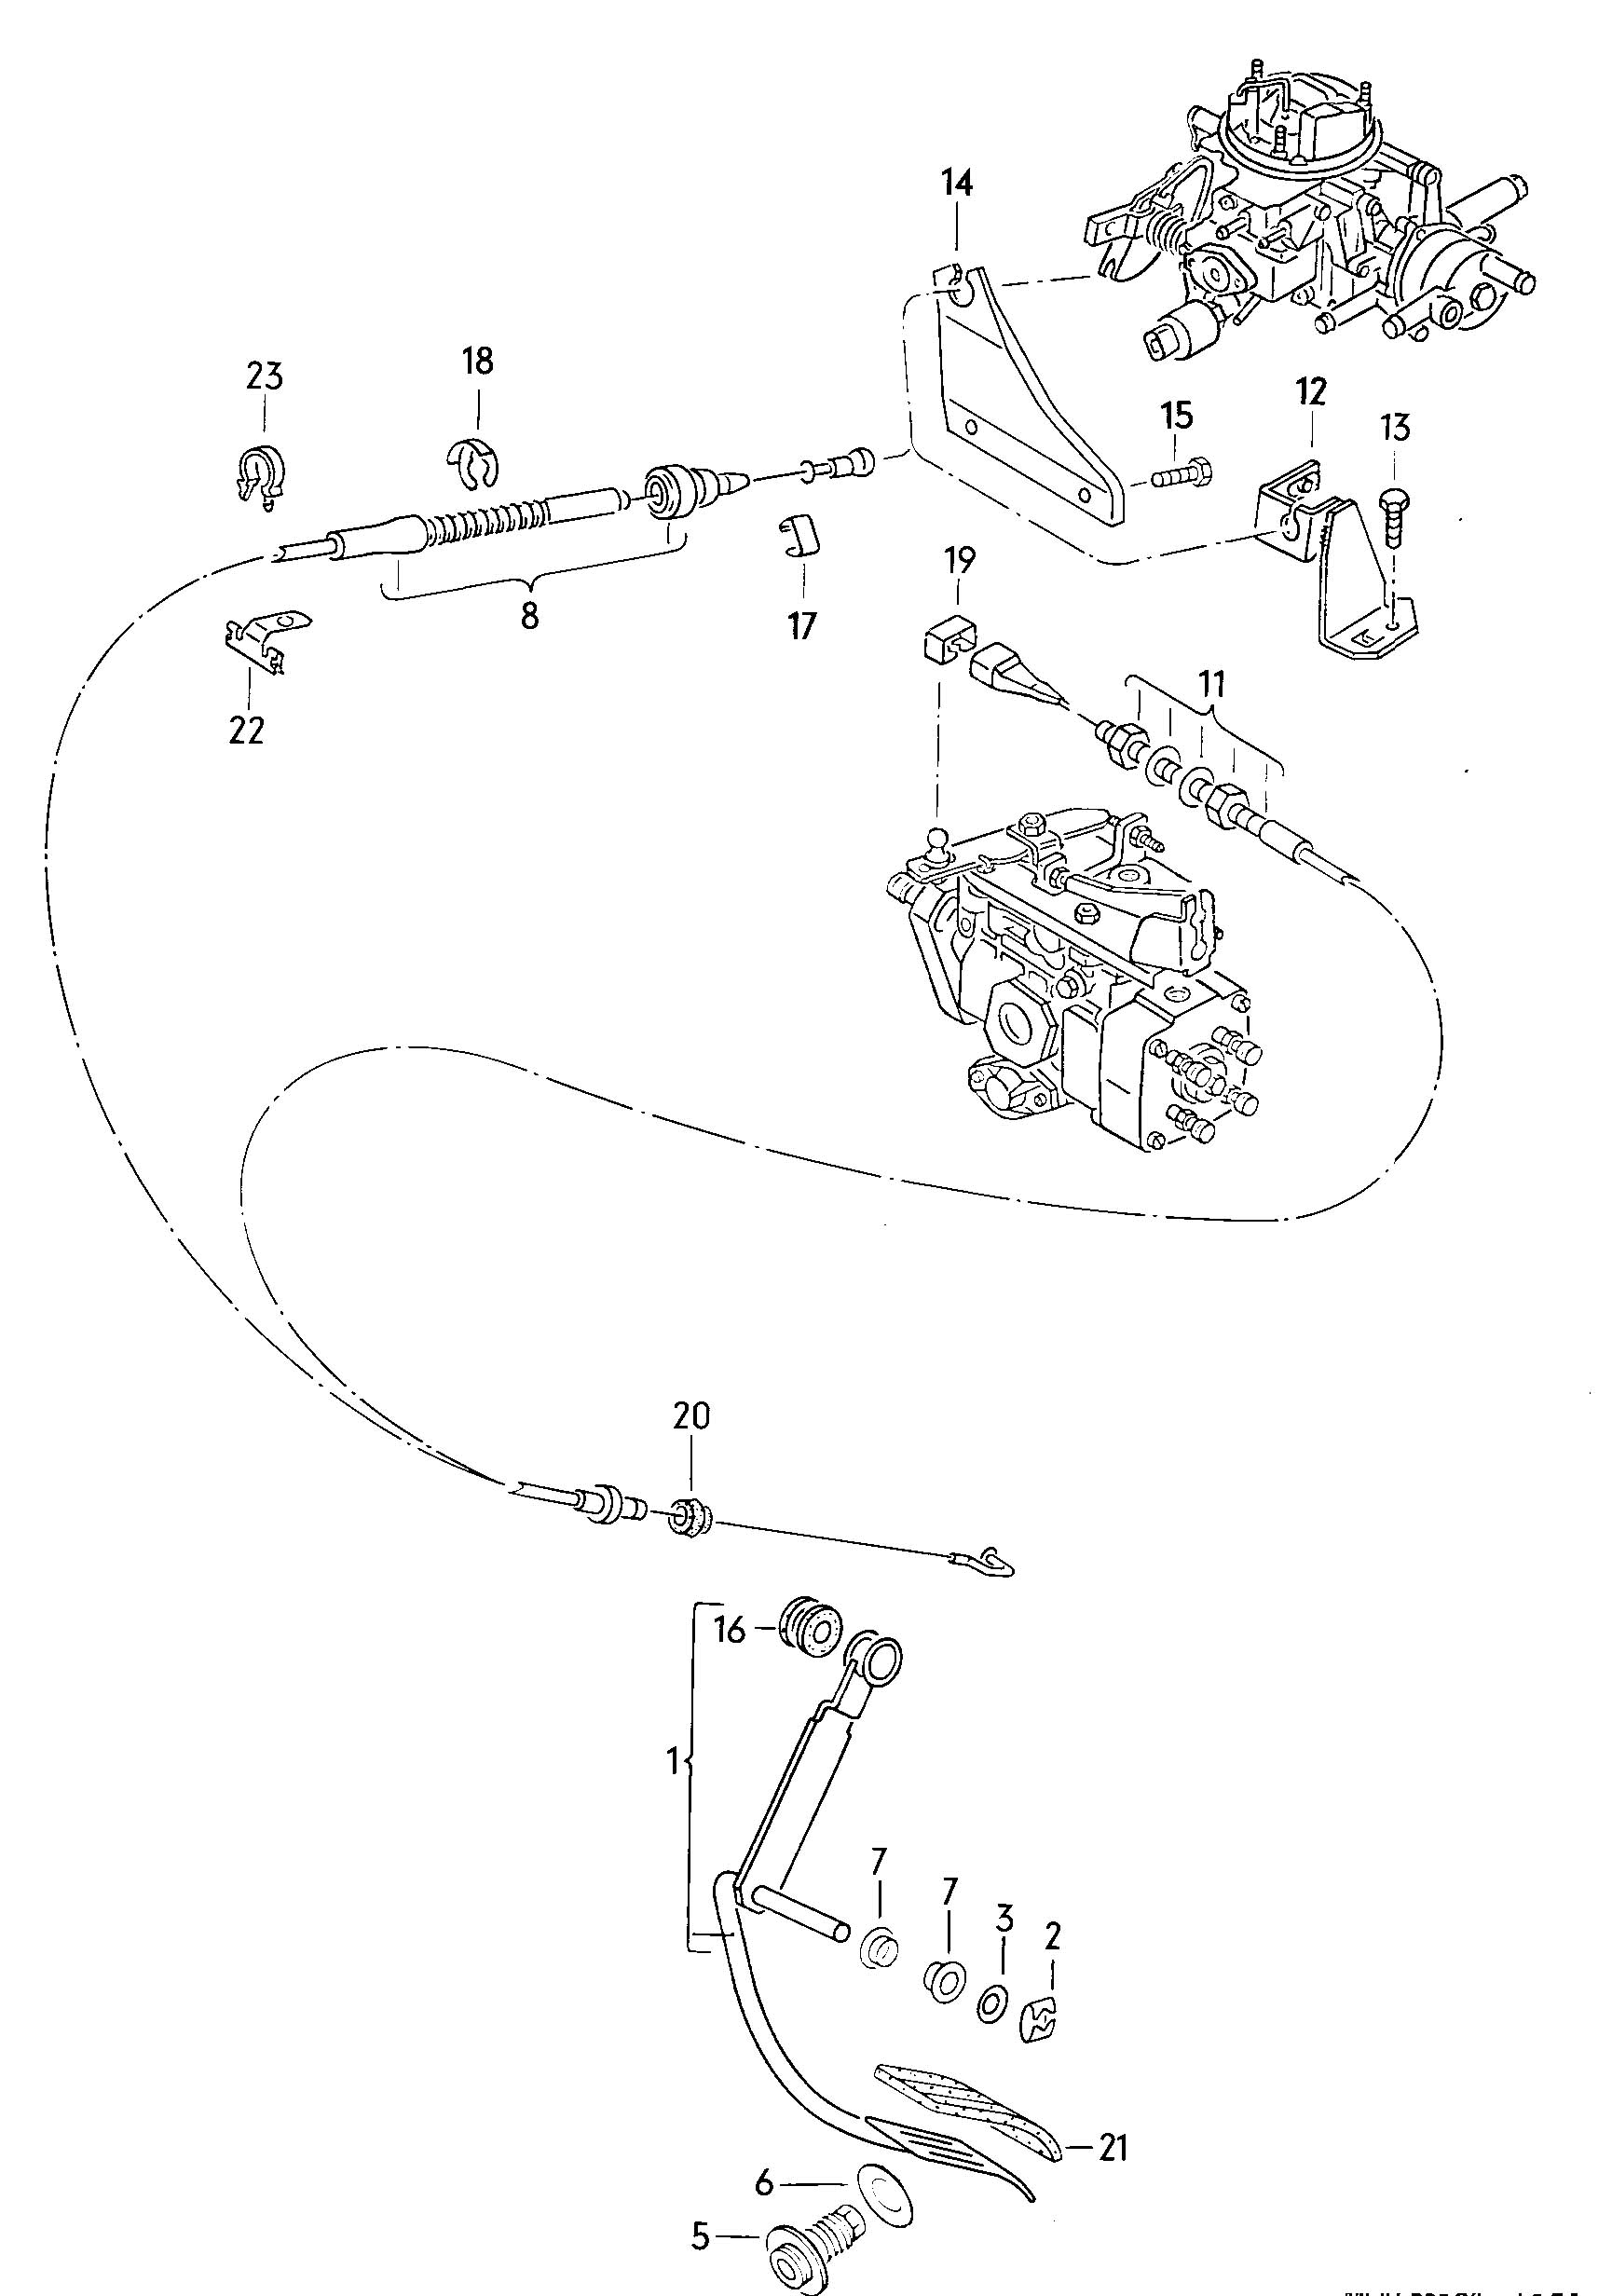 2000 Volkswagen Jetta Water Pump Diagram Html